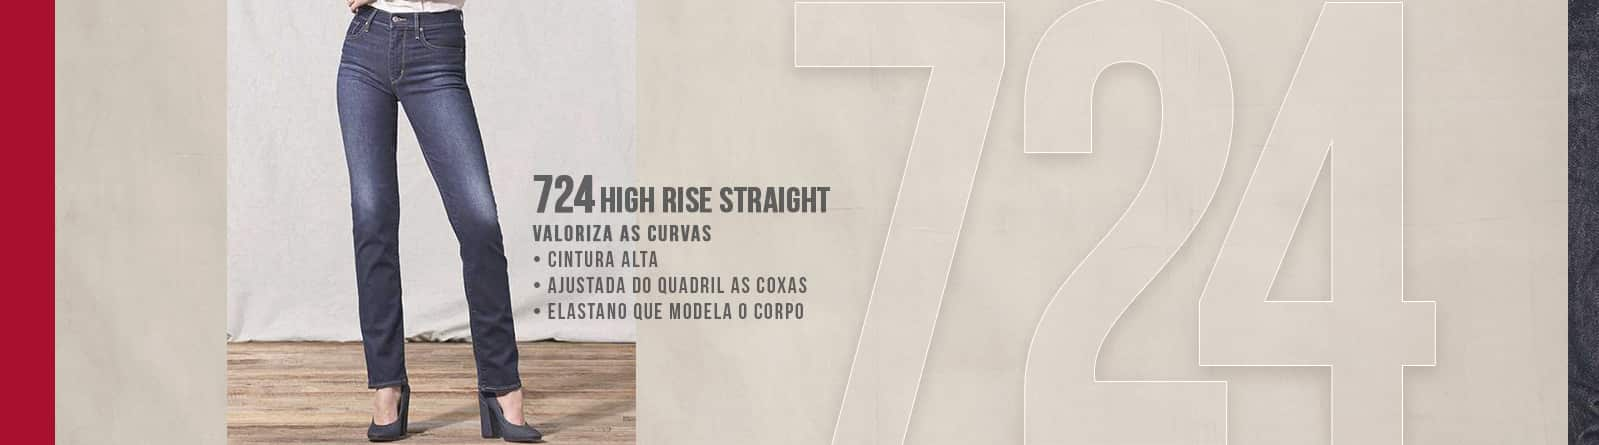 724 High Rise Straight Levis